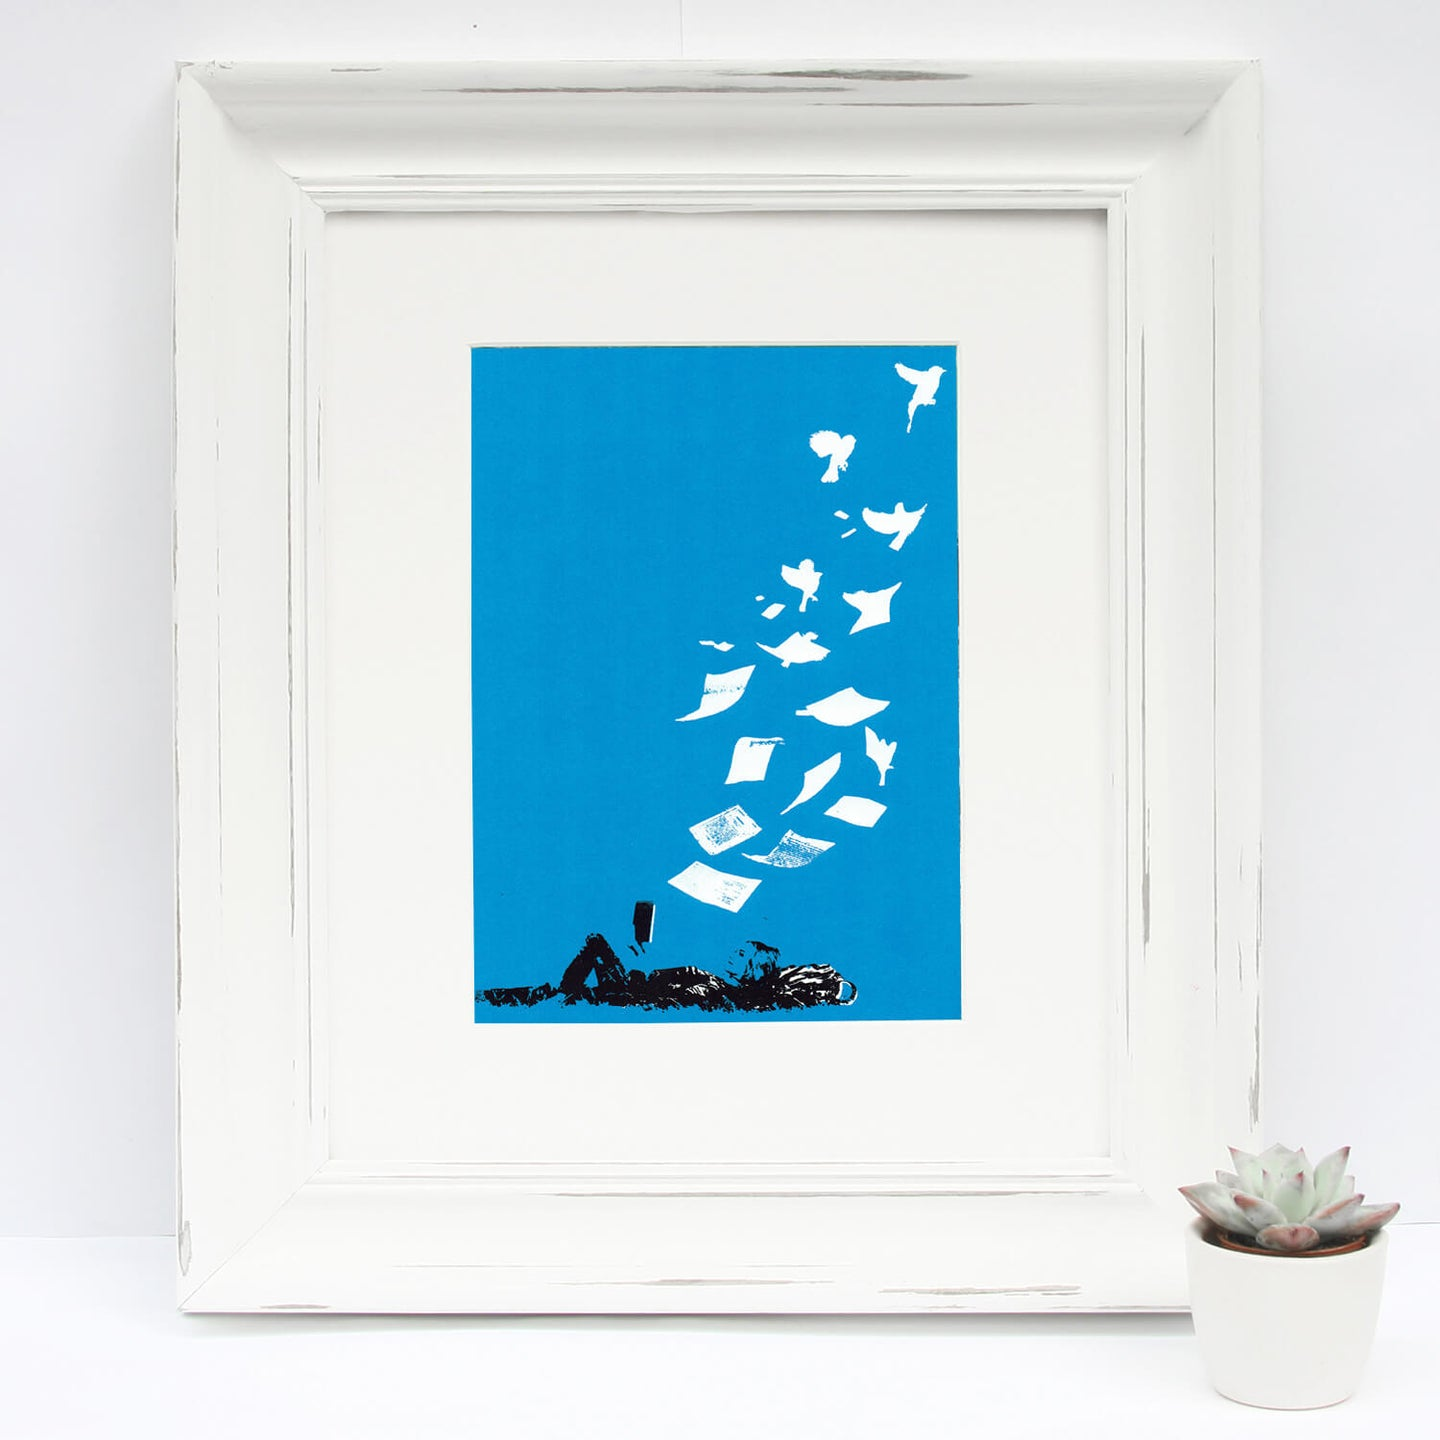 'Flying Low' Original Silkscreen Print